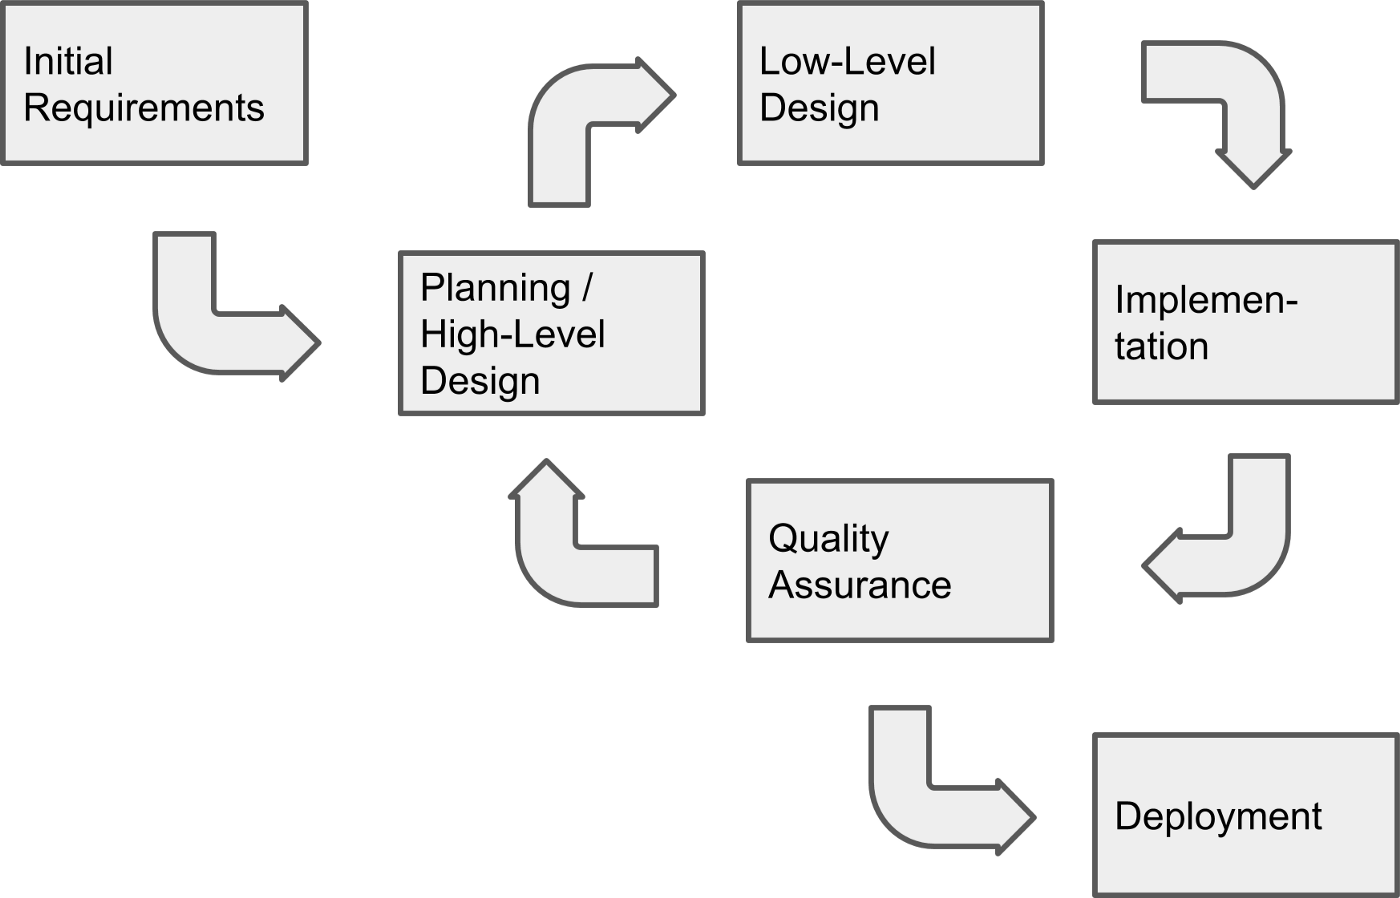 Simple iterative process model (software development life cycle)